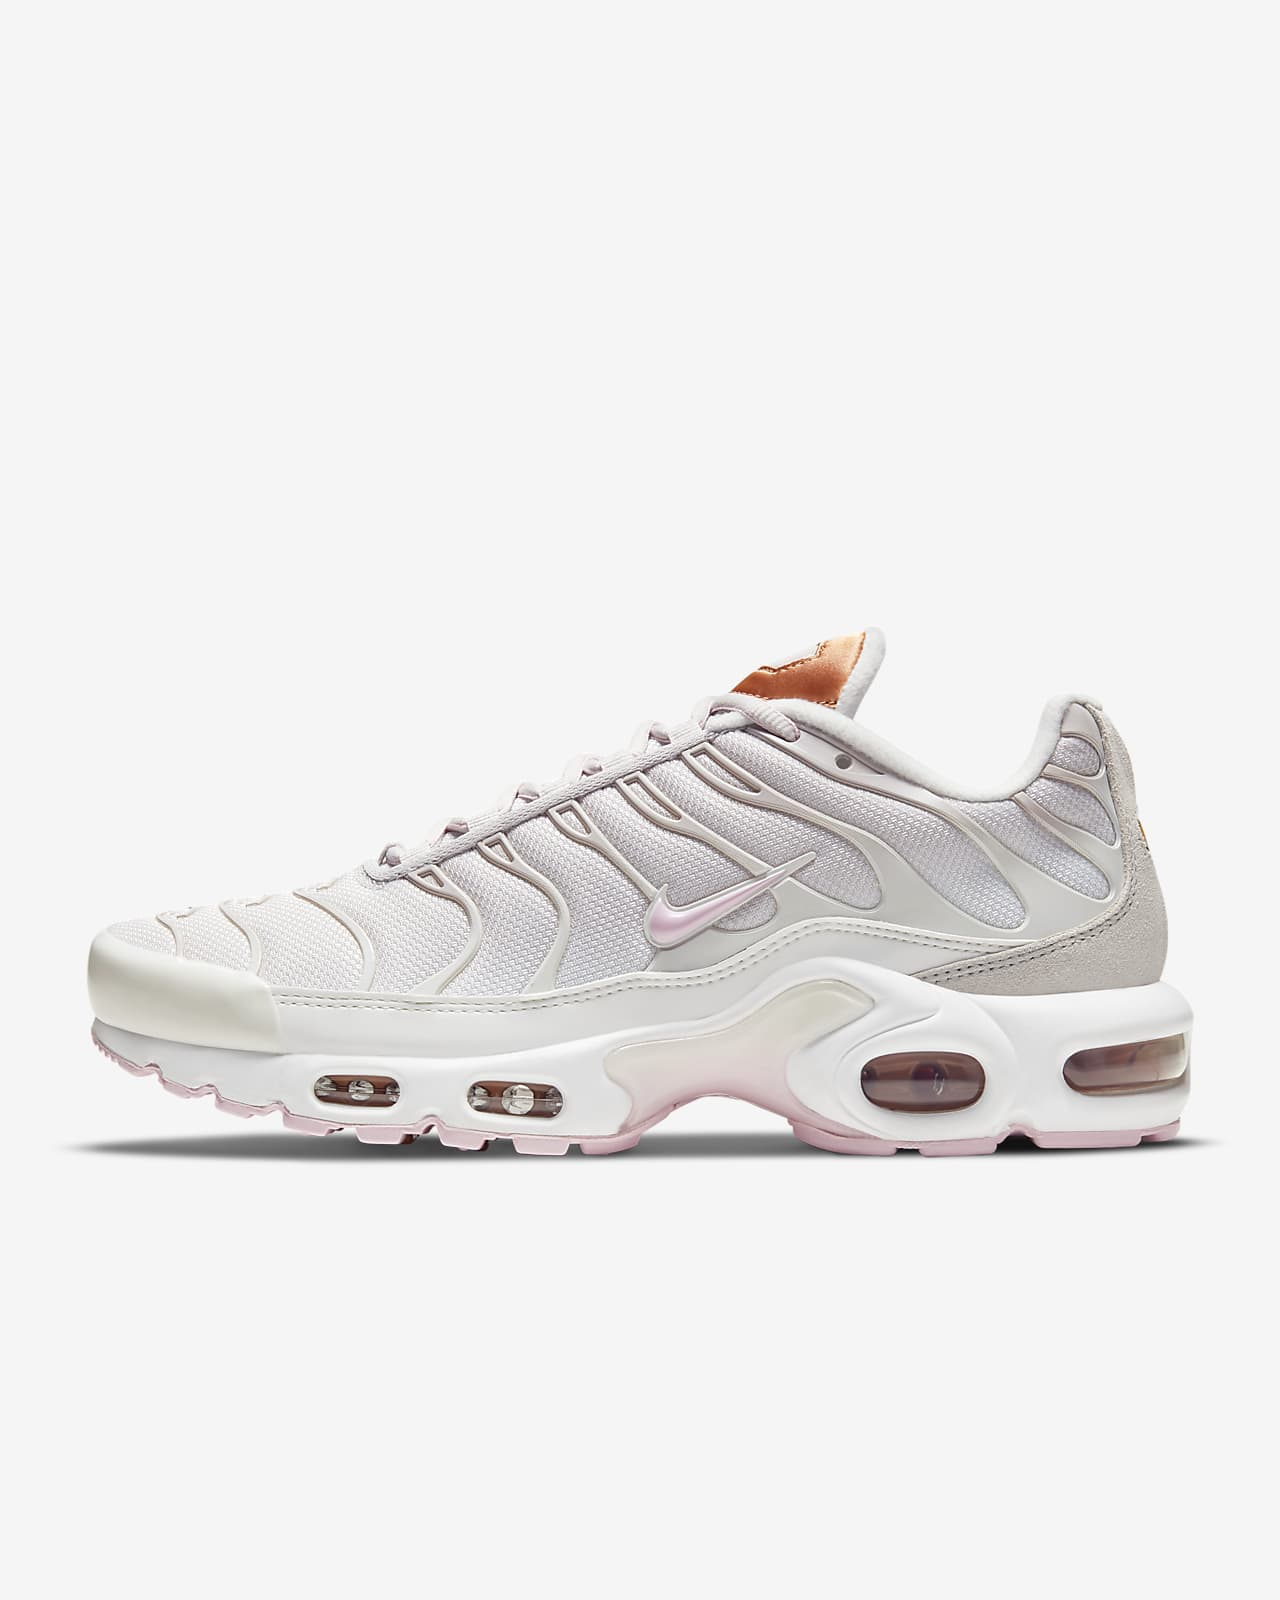 Nike Air Max Plus Damenschuh